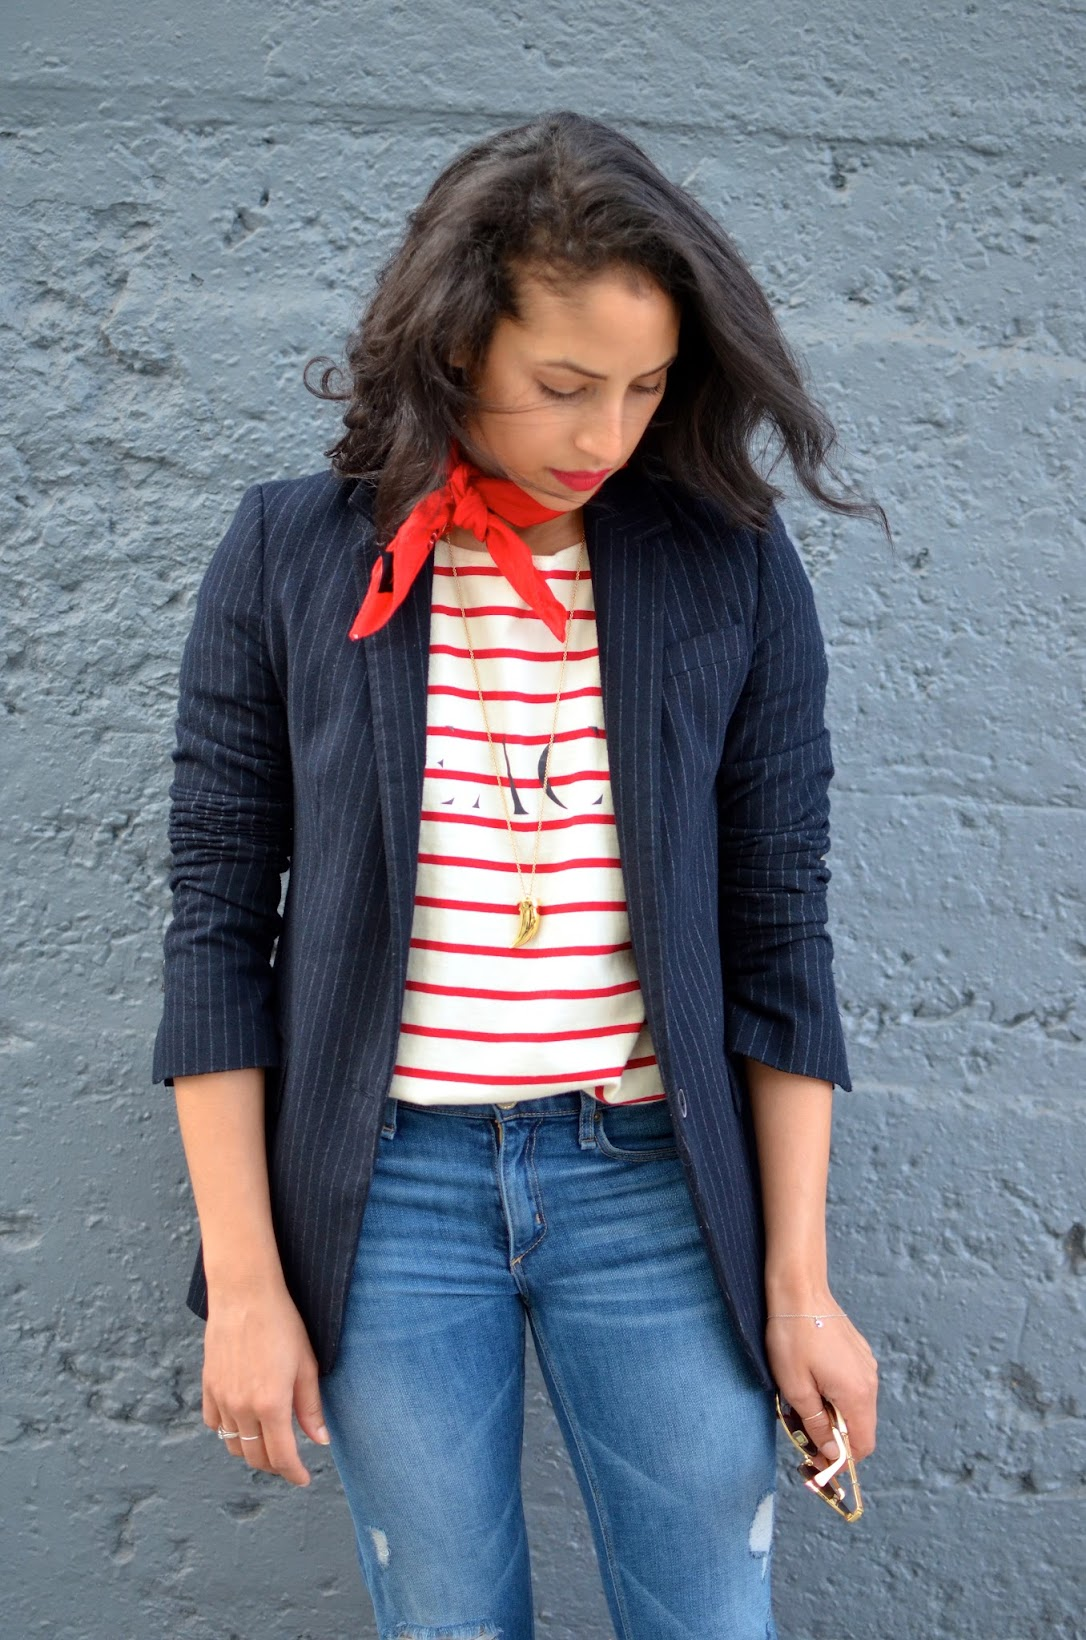 OOTD, SF style, flares, denim flares, McGuire Marjorelle flares, striped Madewell top, red bandana, neck scarf